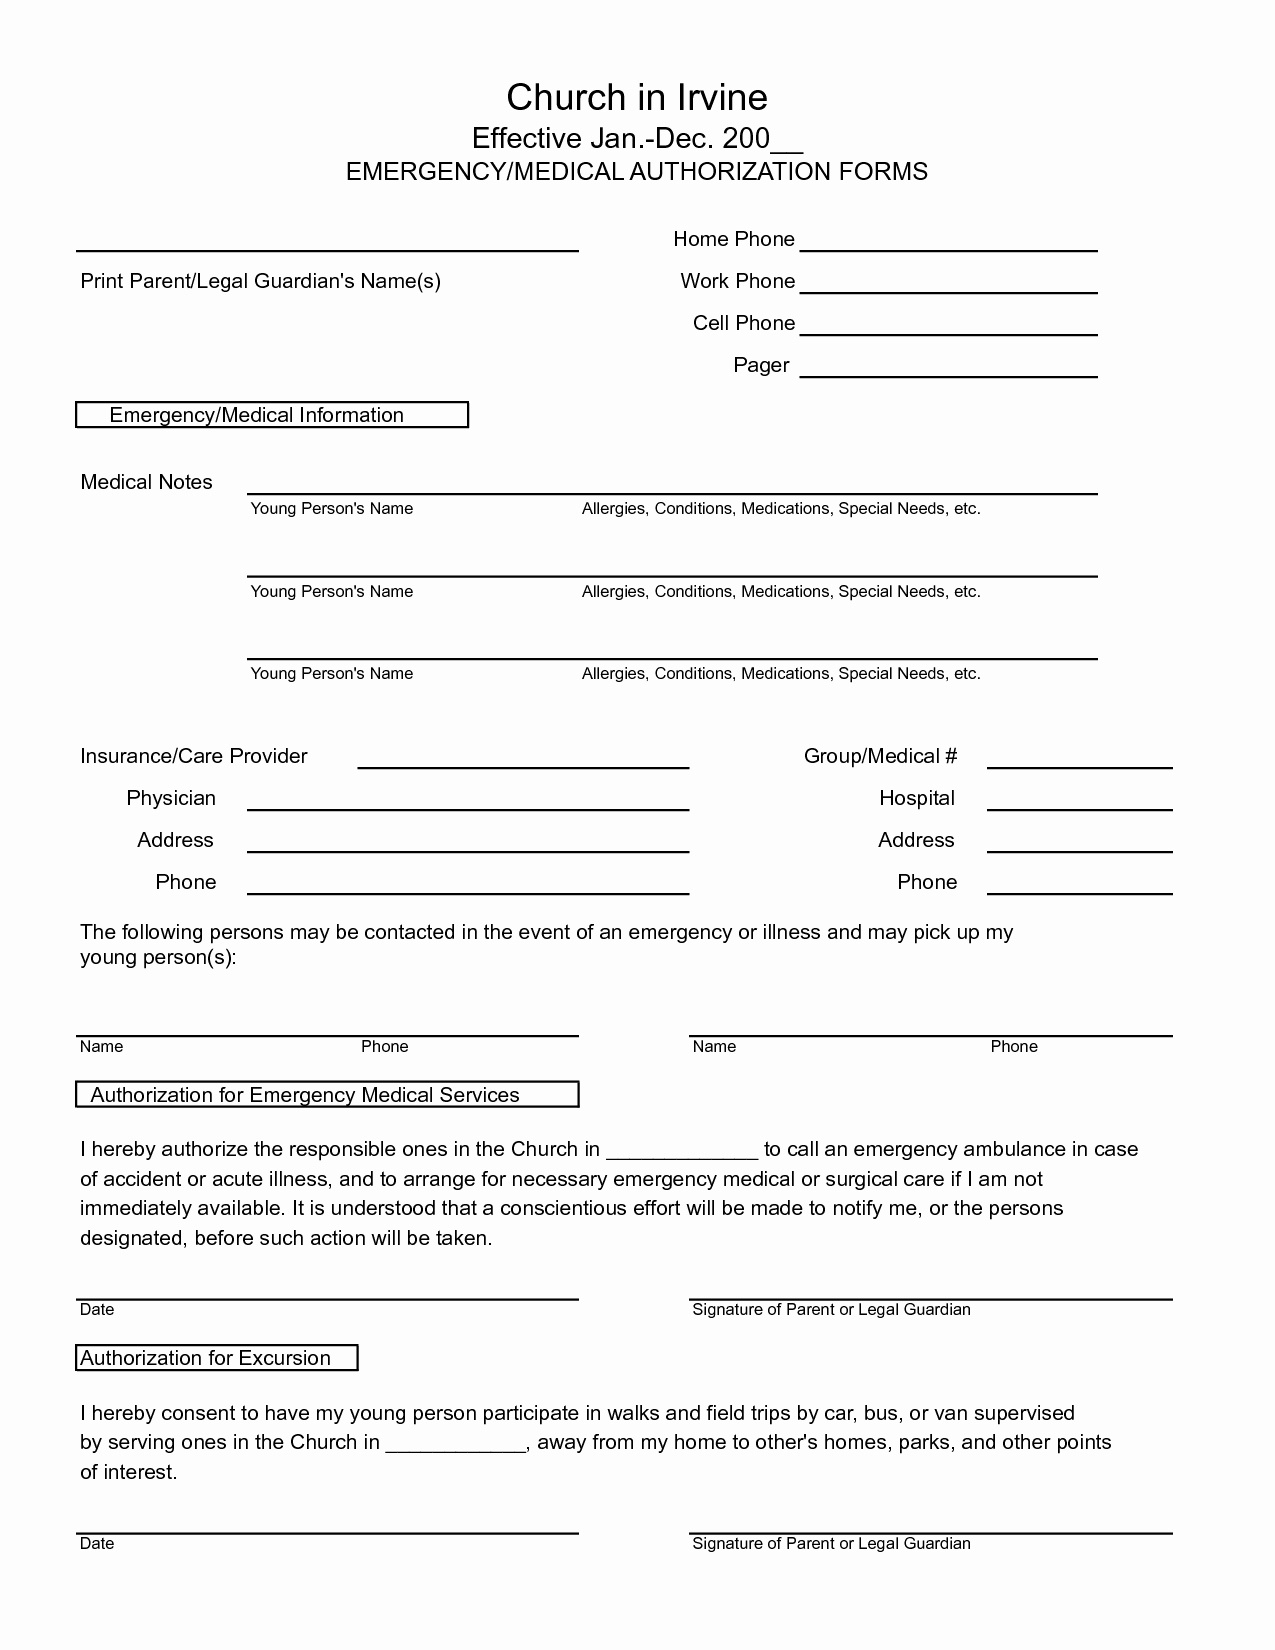 50 Free Medical Forms Templates | Culturatti - Free Printable Medical Forms